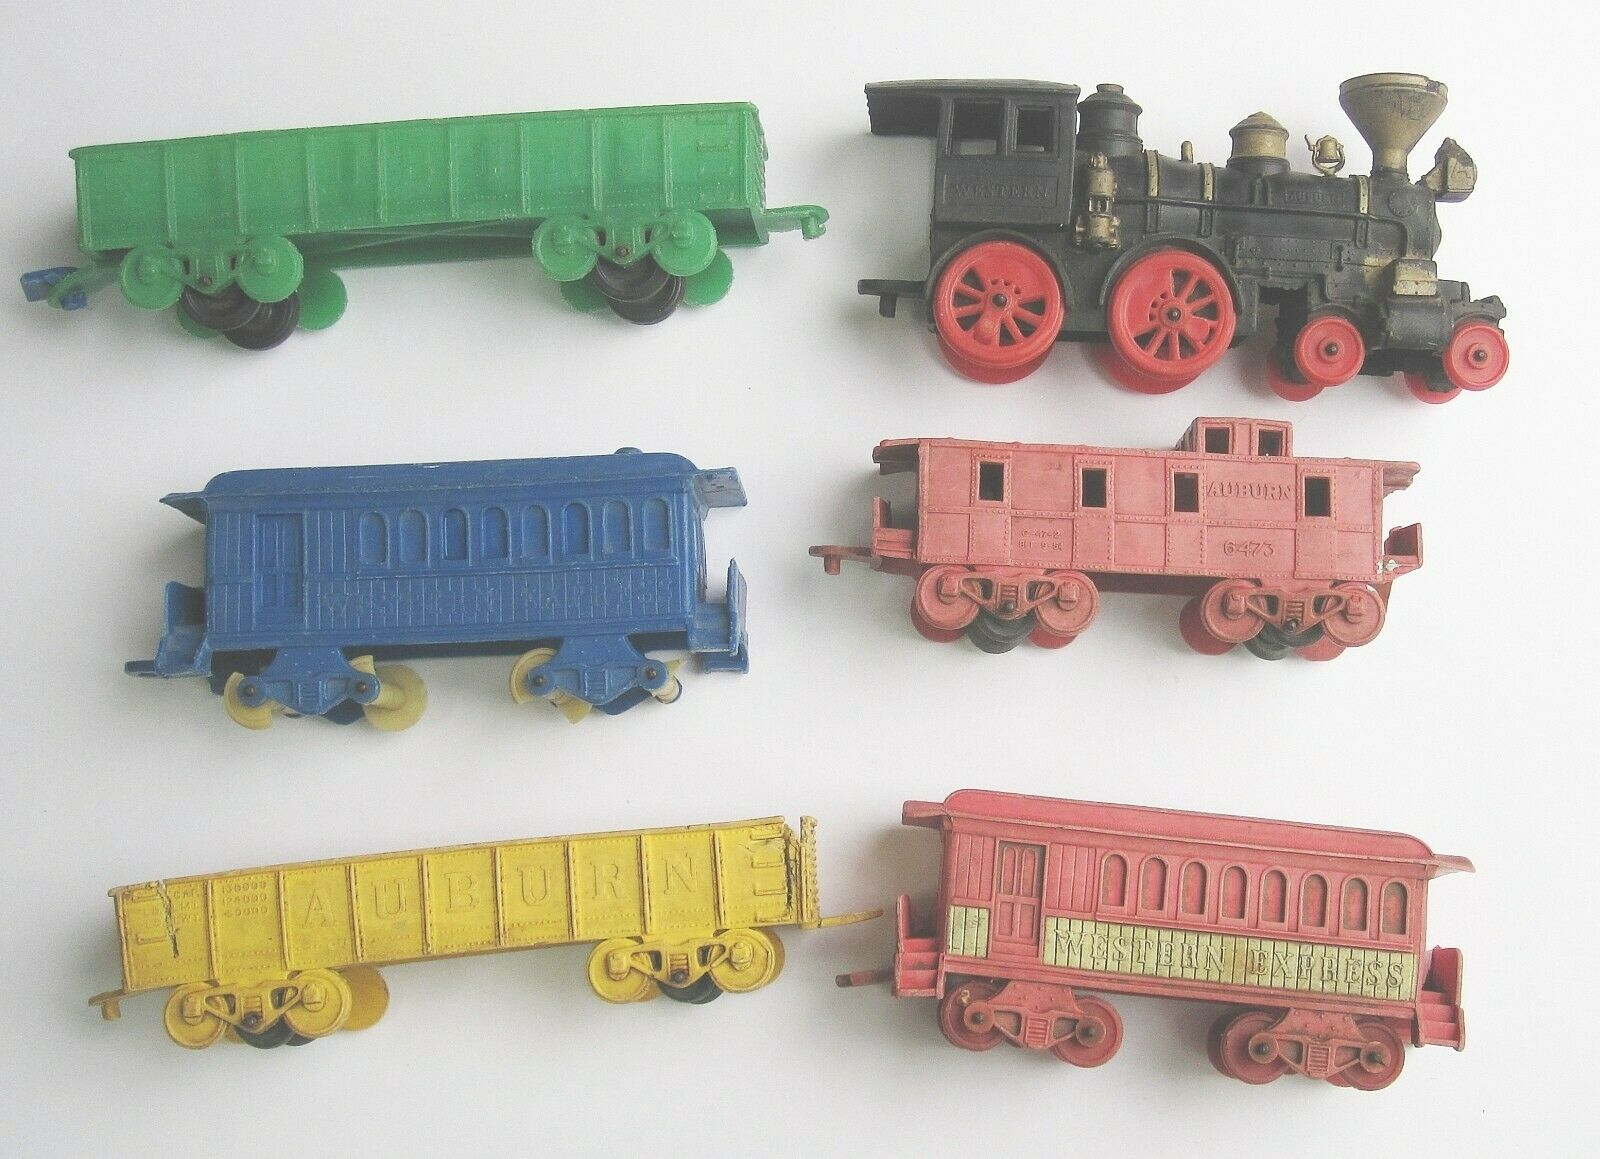 Auburn rubber toy train lot of 6 vintage ohio  1950s locomotive 7  path  prix de gros